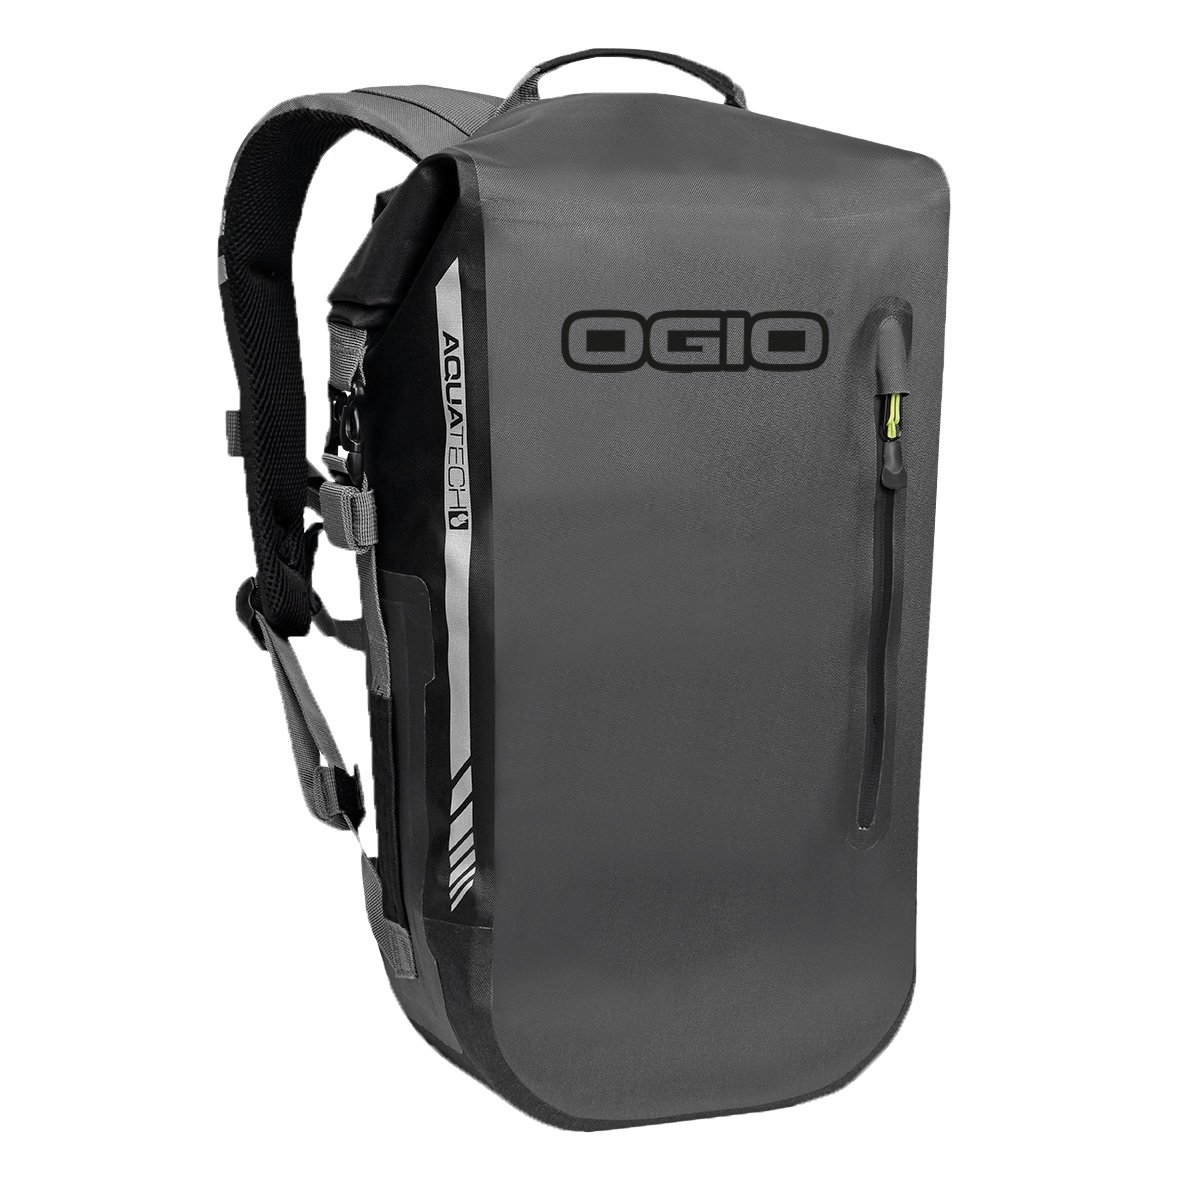 OGIO 123009.36 All Elements Pack - Stealth Black